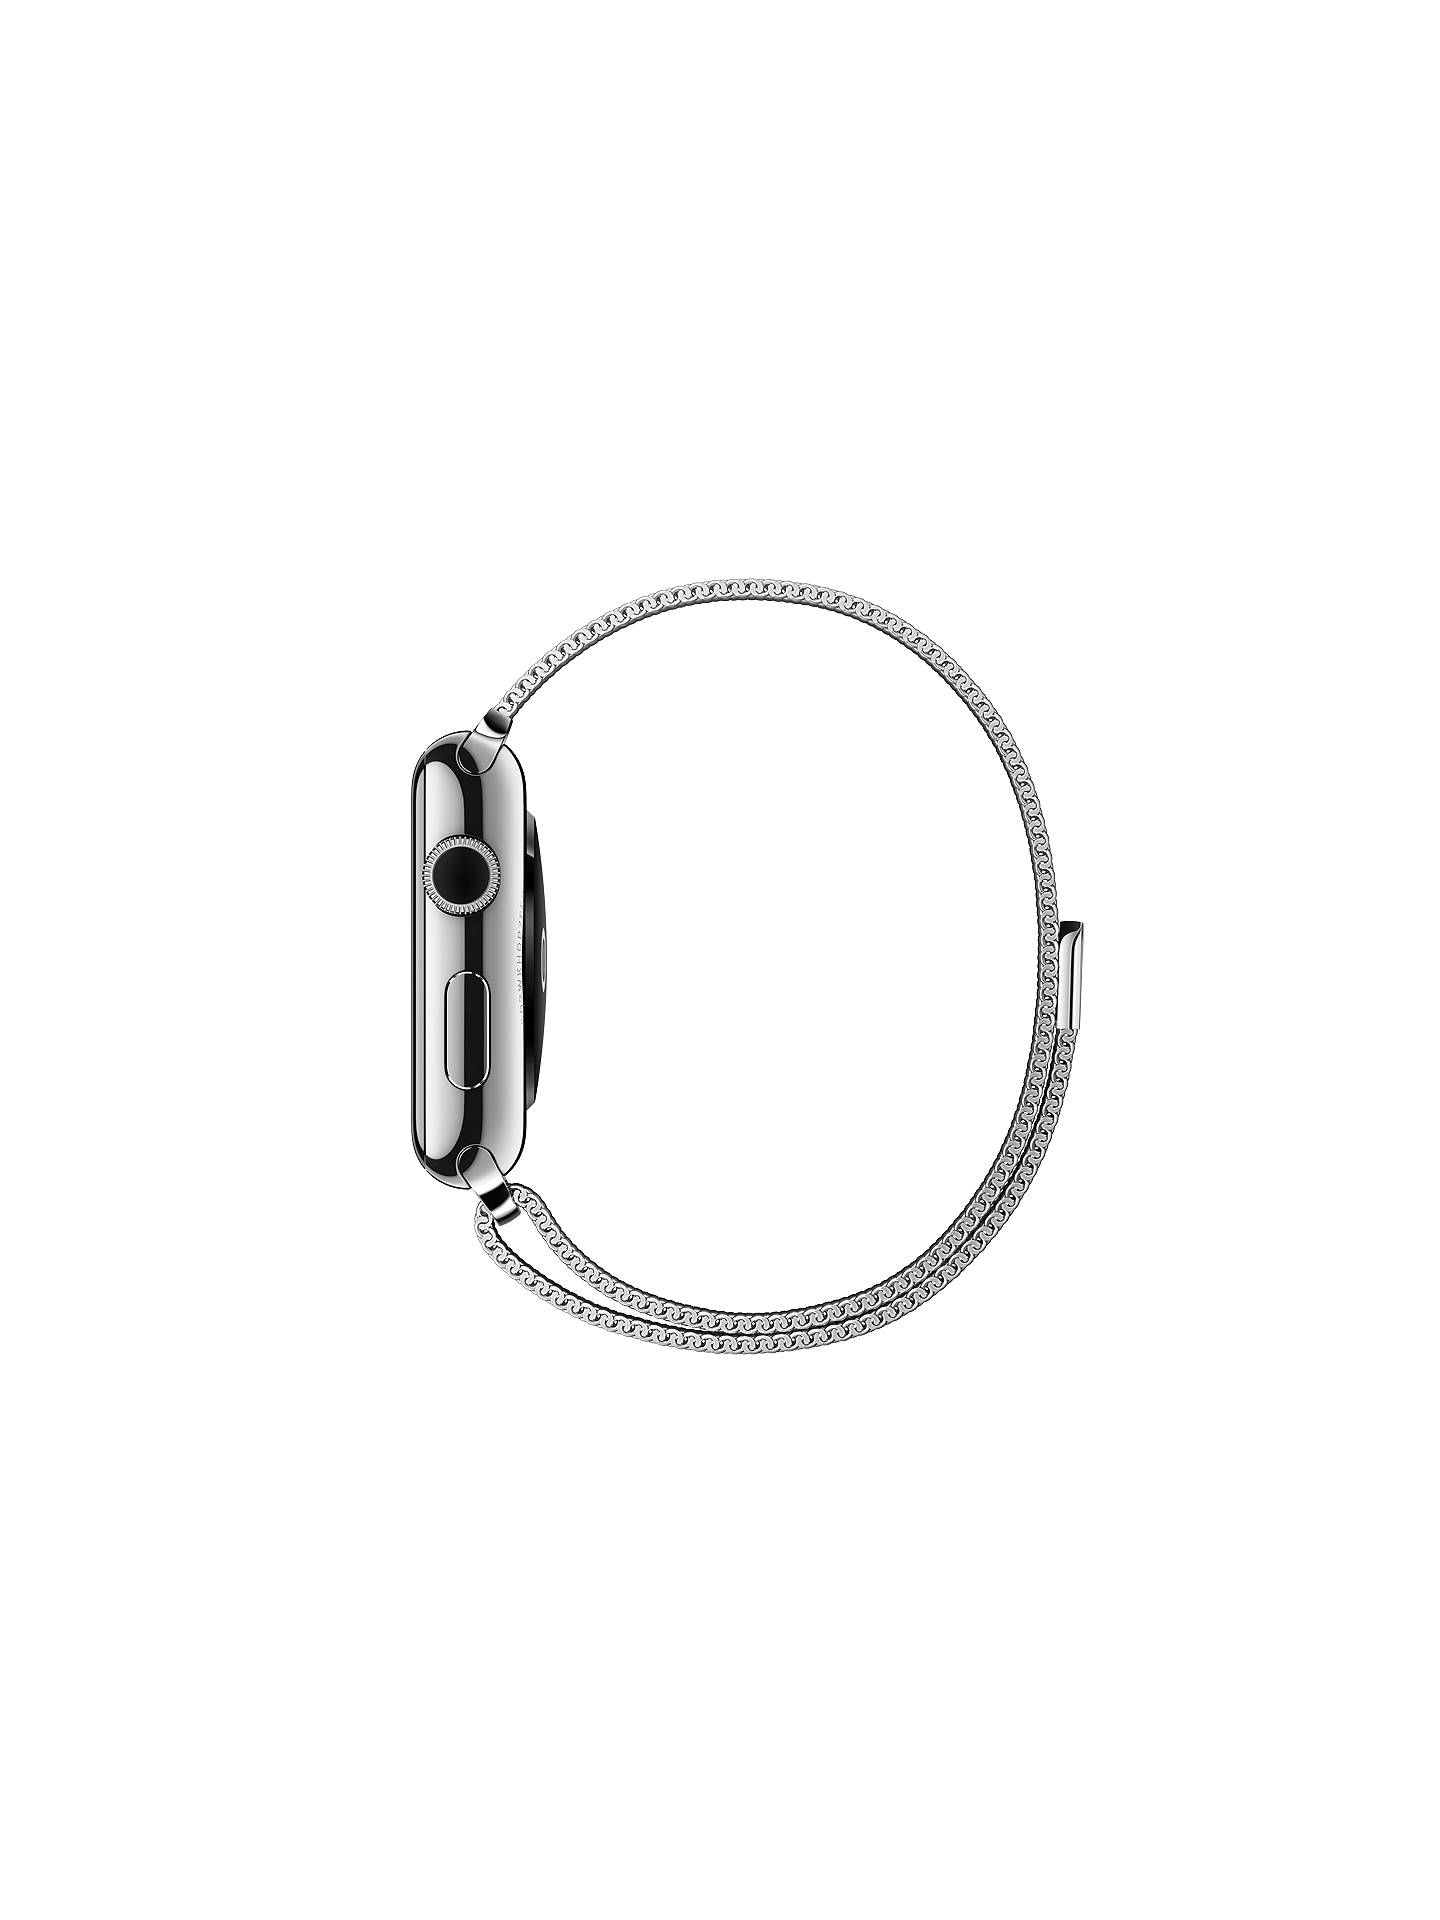 406beaa37ac ... Buy Apple Watch with 42mm Stainless Steel Case & Milanese Loop Online  at johnlewis.com